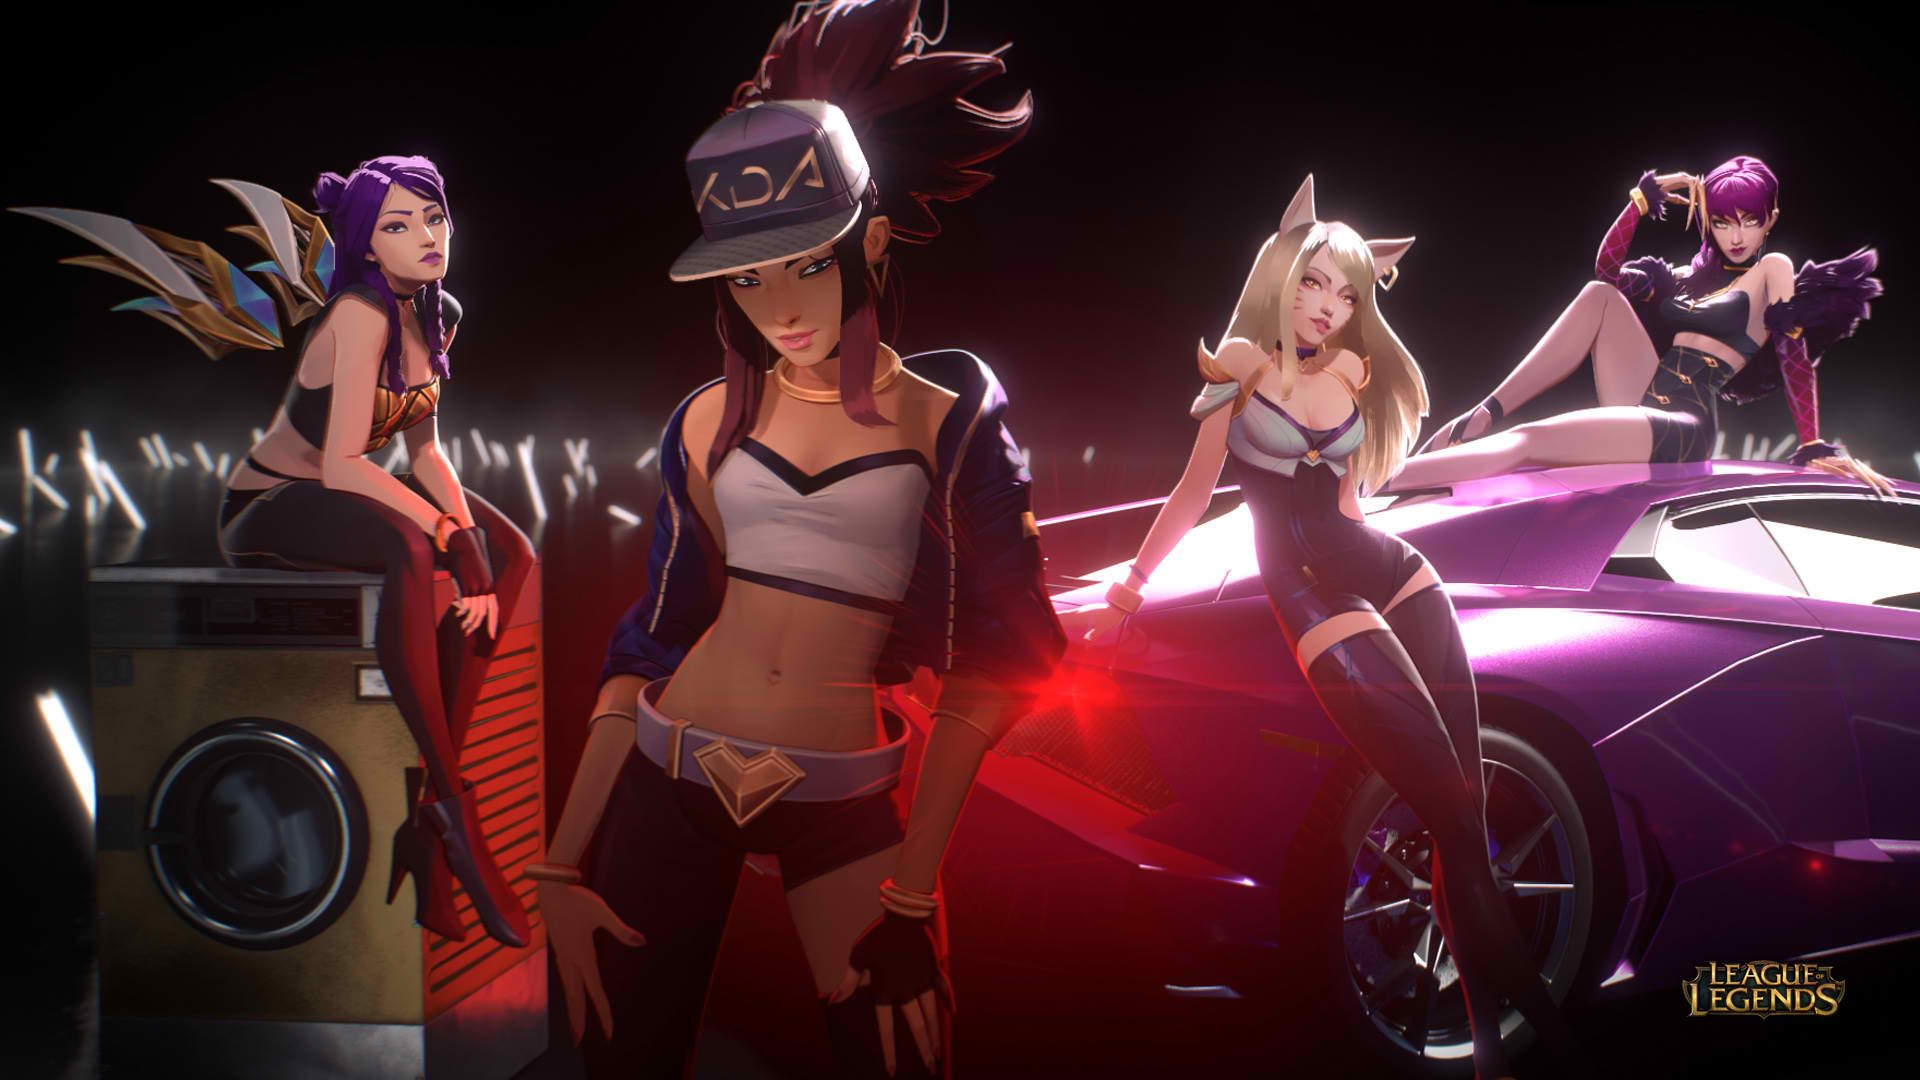 Image Result For Akali Kda Music Video League Of Legends Lol League Of Legends League Of Legends Characters